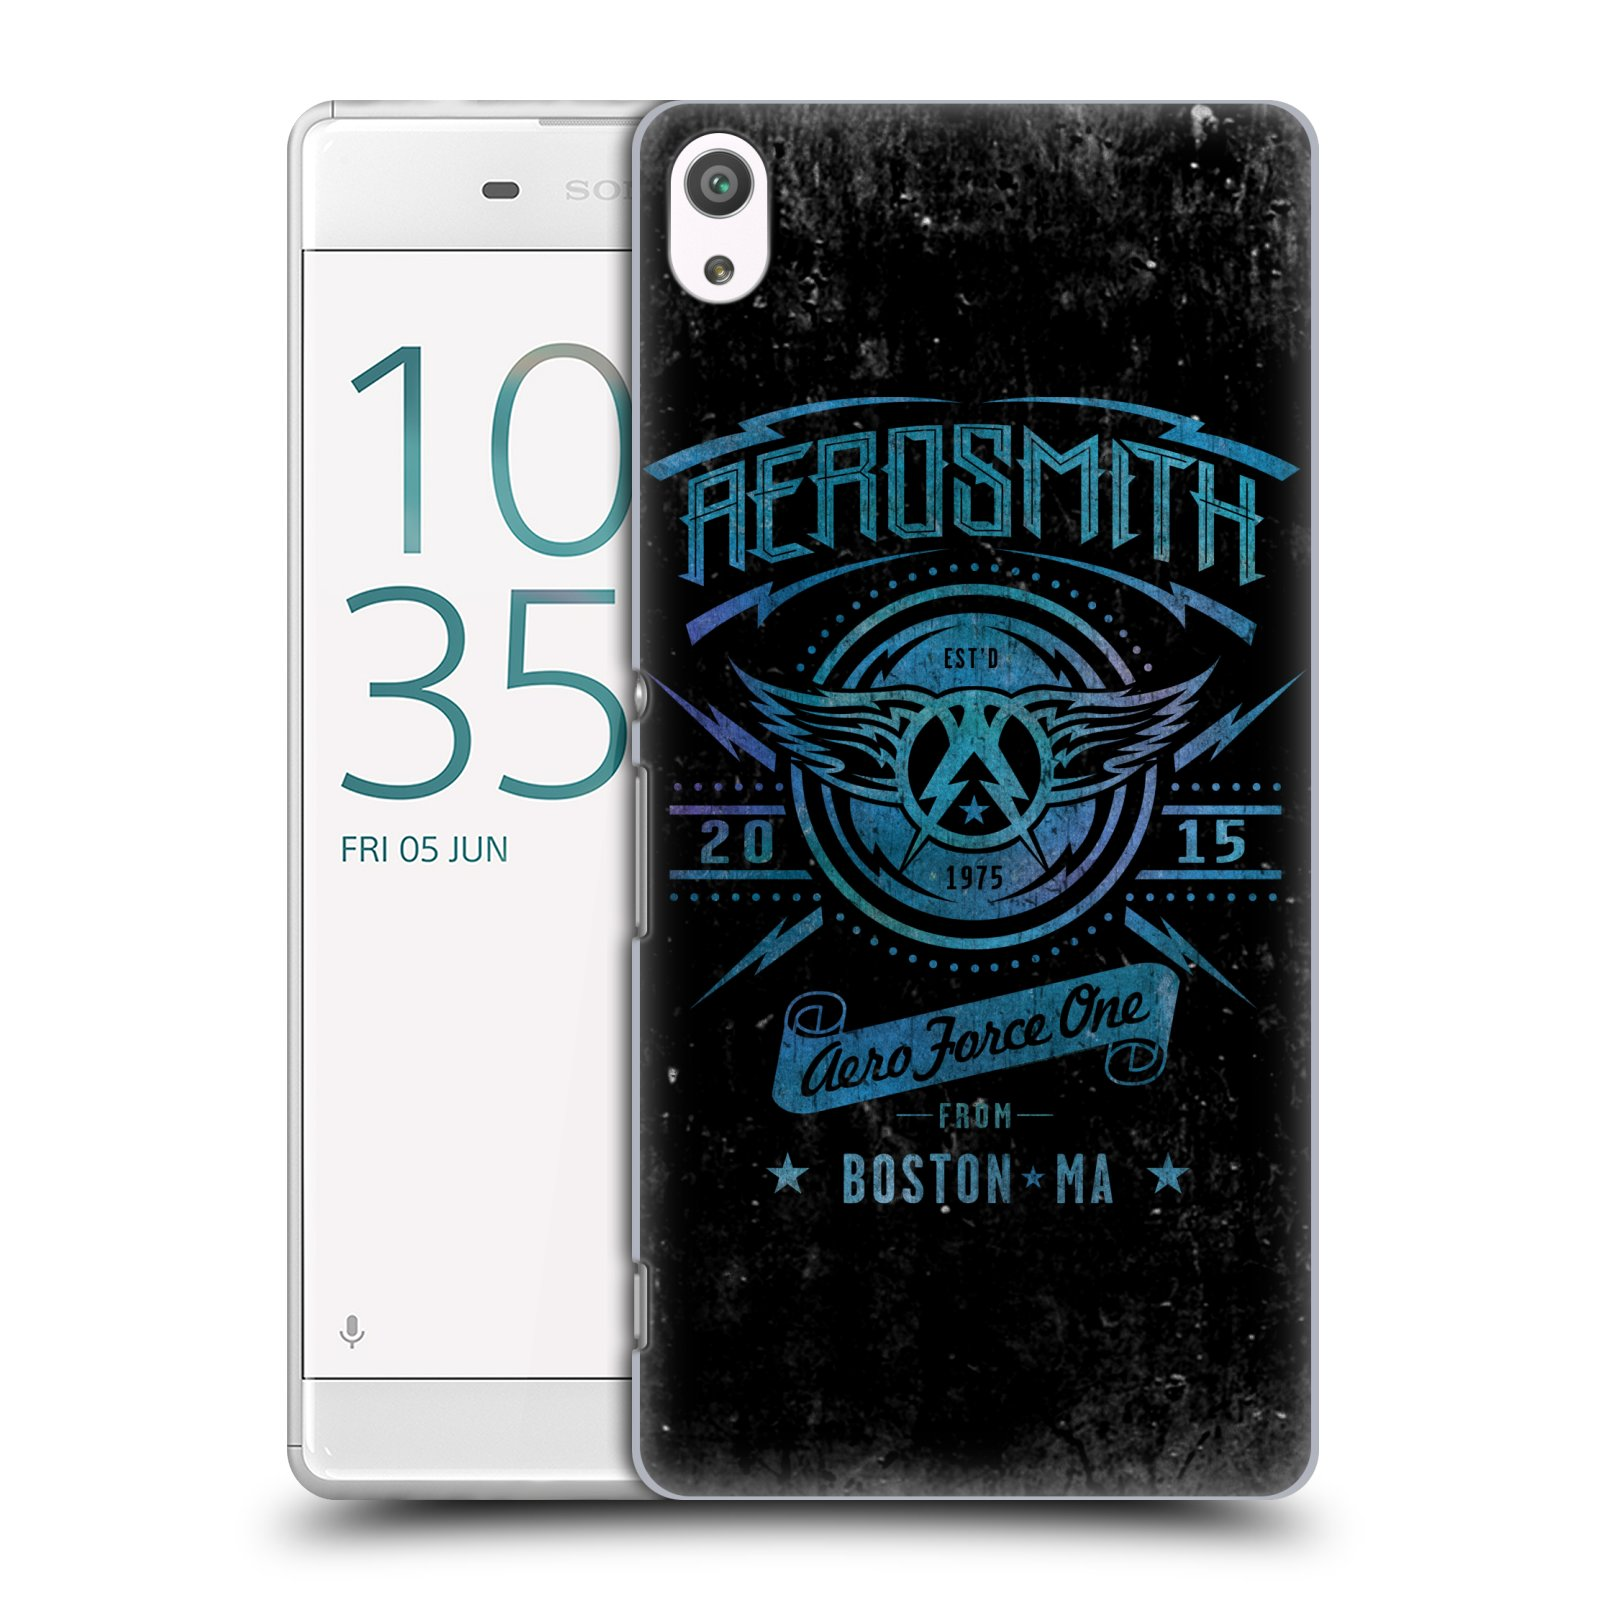 Plastové pouzdro na mobil Sony Xperia XA Ultra HEAD CASE - Aerosmith - Aero Force One